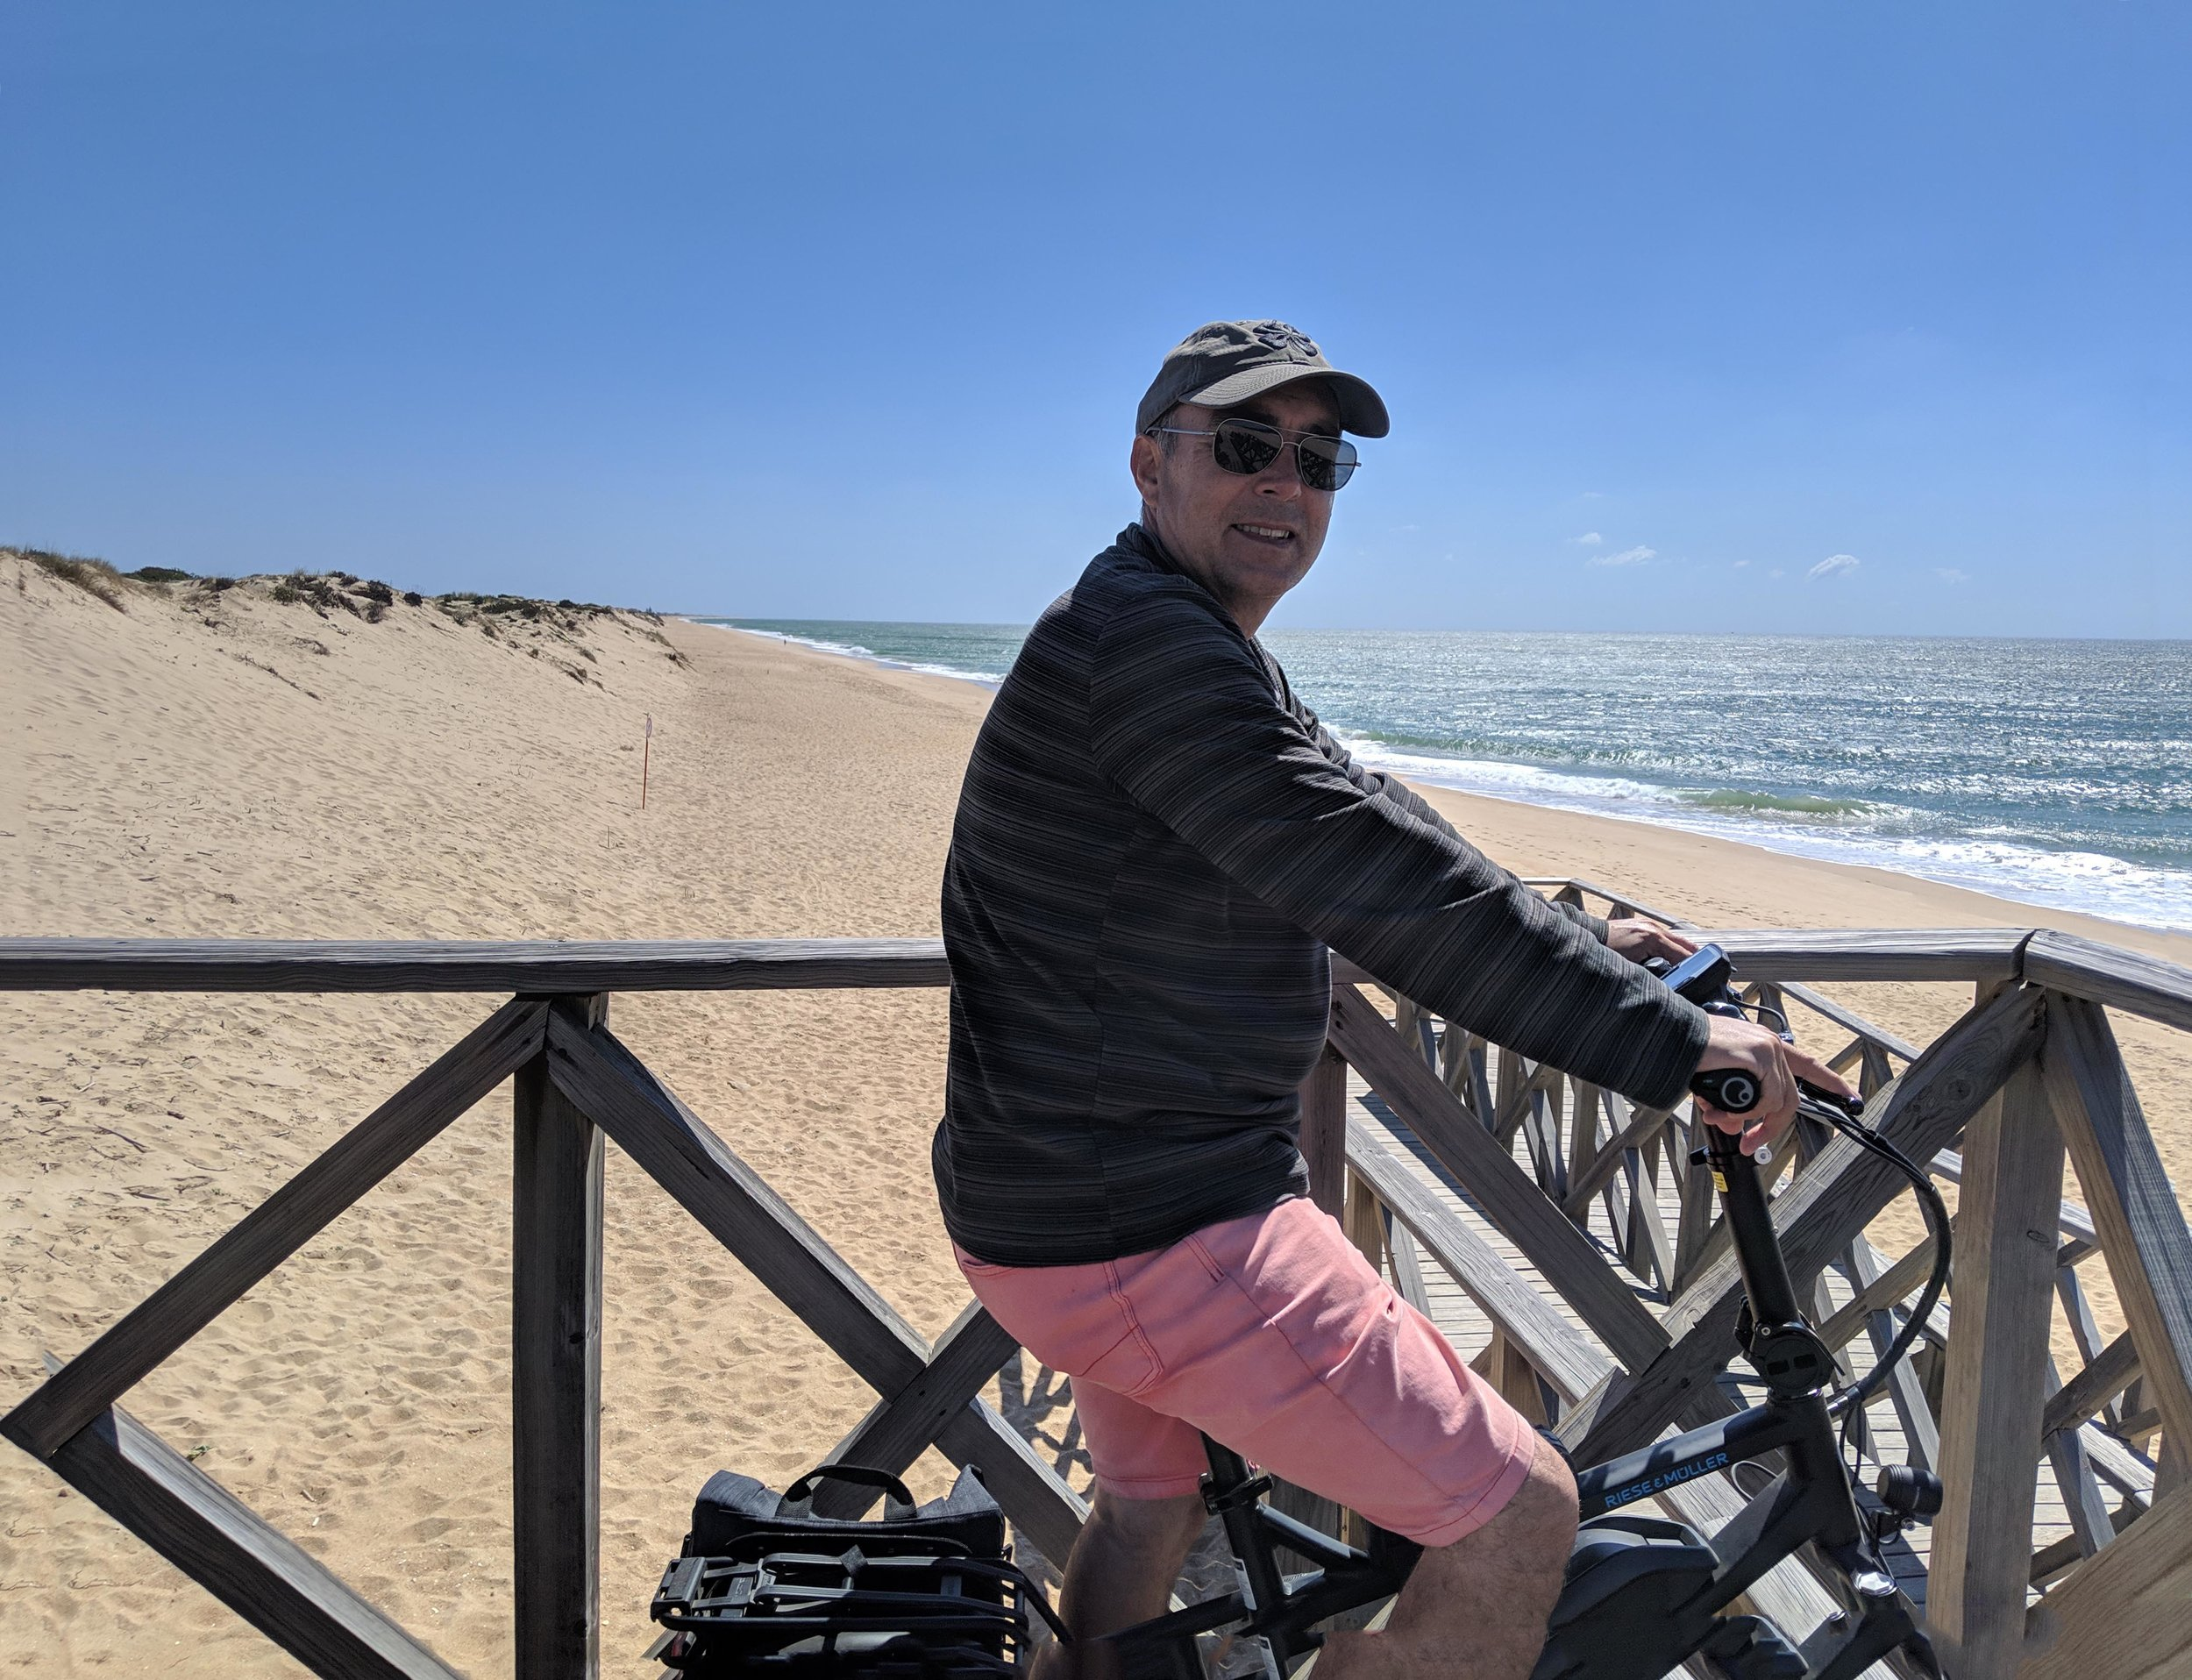 Cycling around the beautiful Ria Formosa